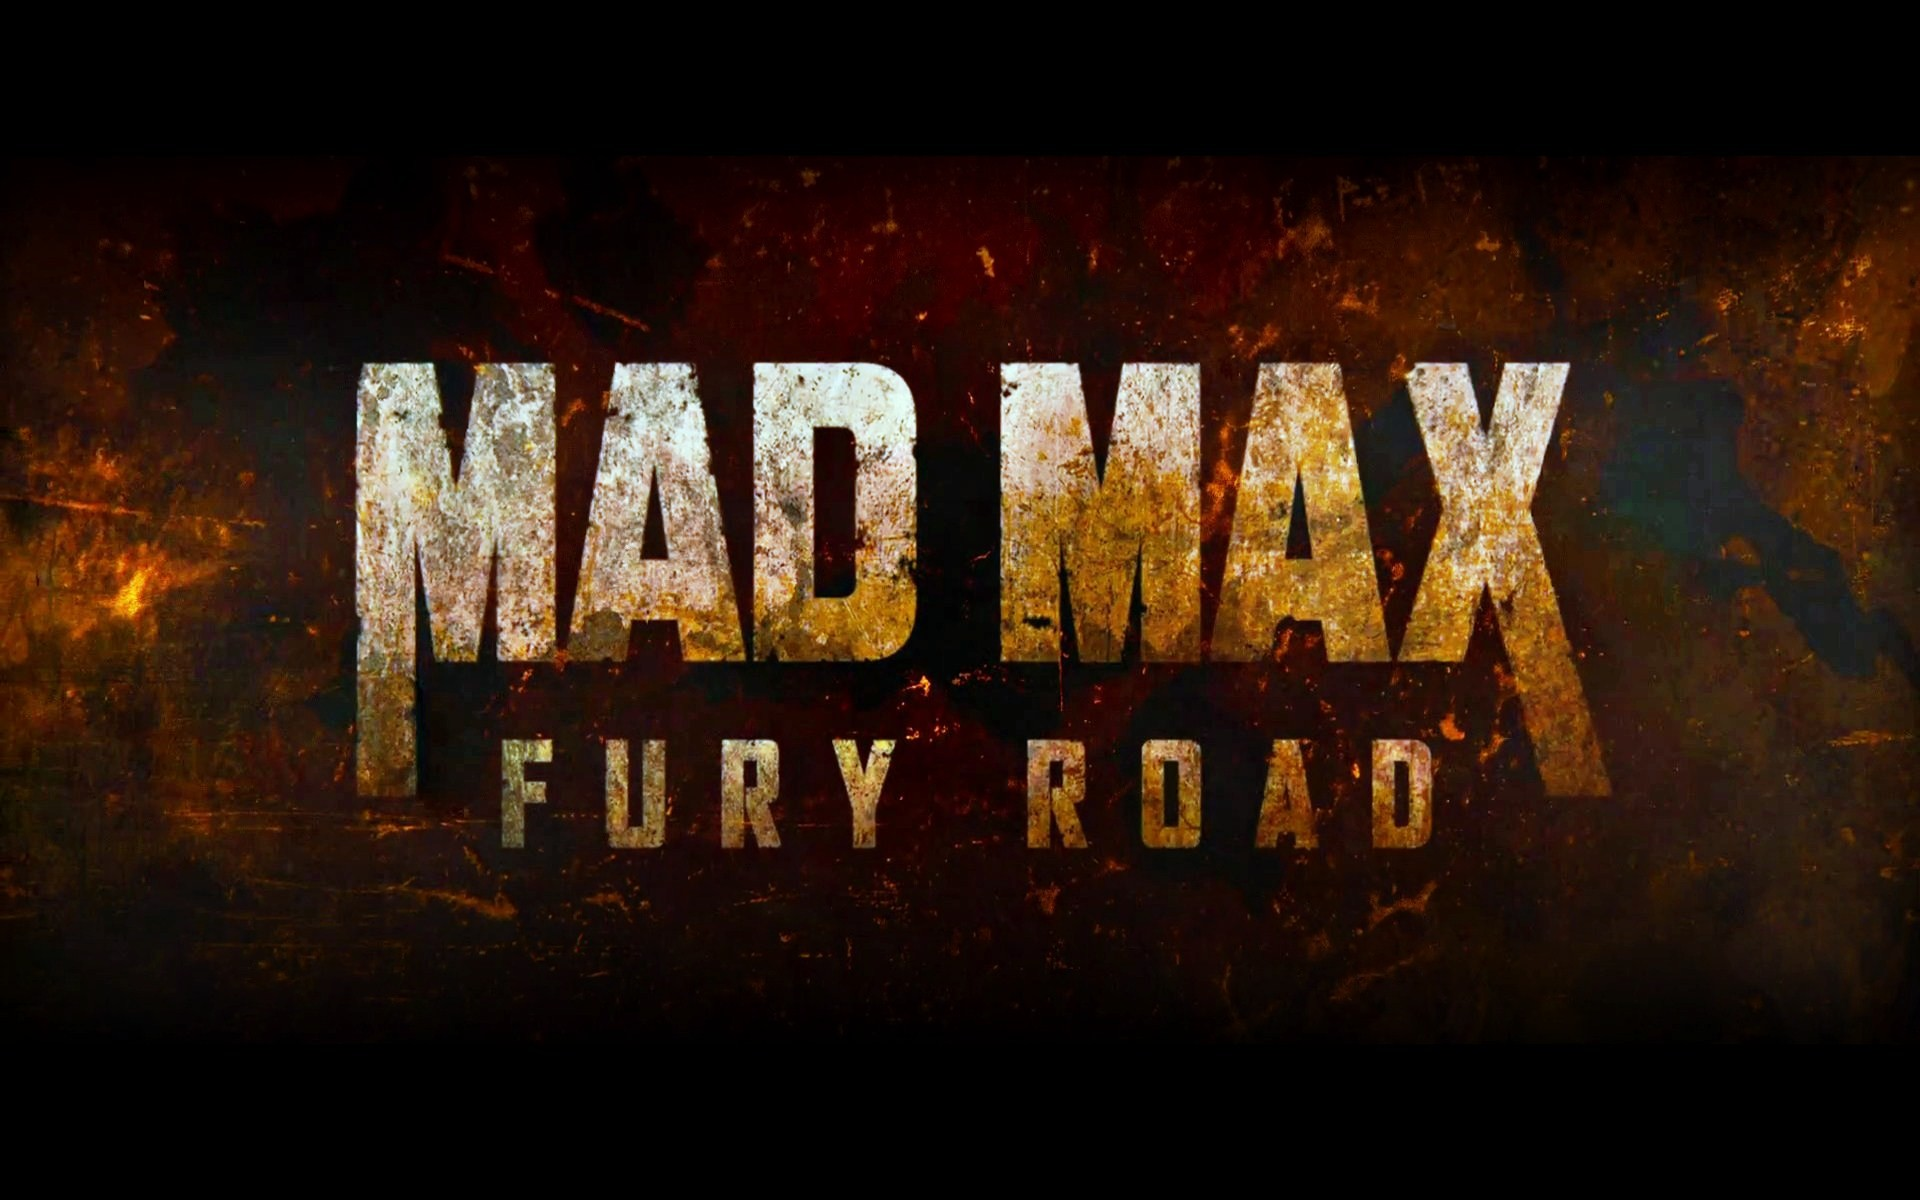 Mad max game clipart banner free stock Mad max fury road clipart 1920x1080 - ClipartFest banner free stock